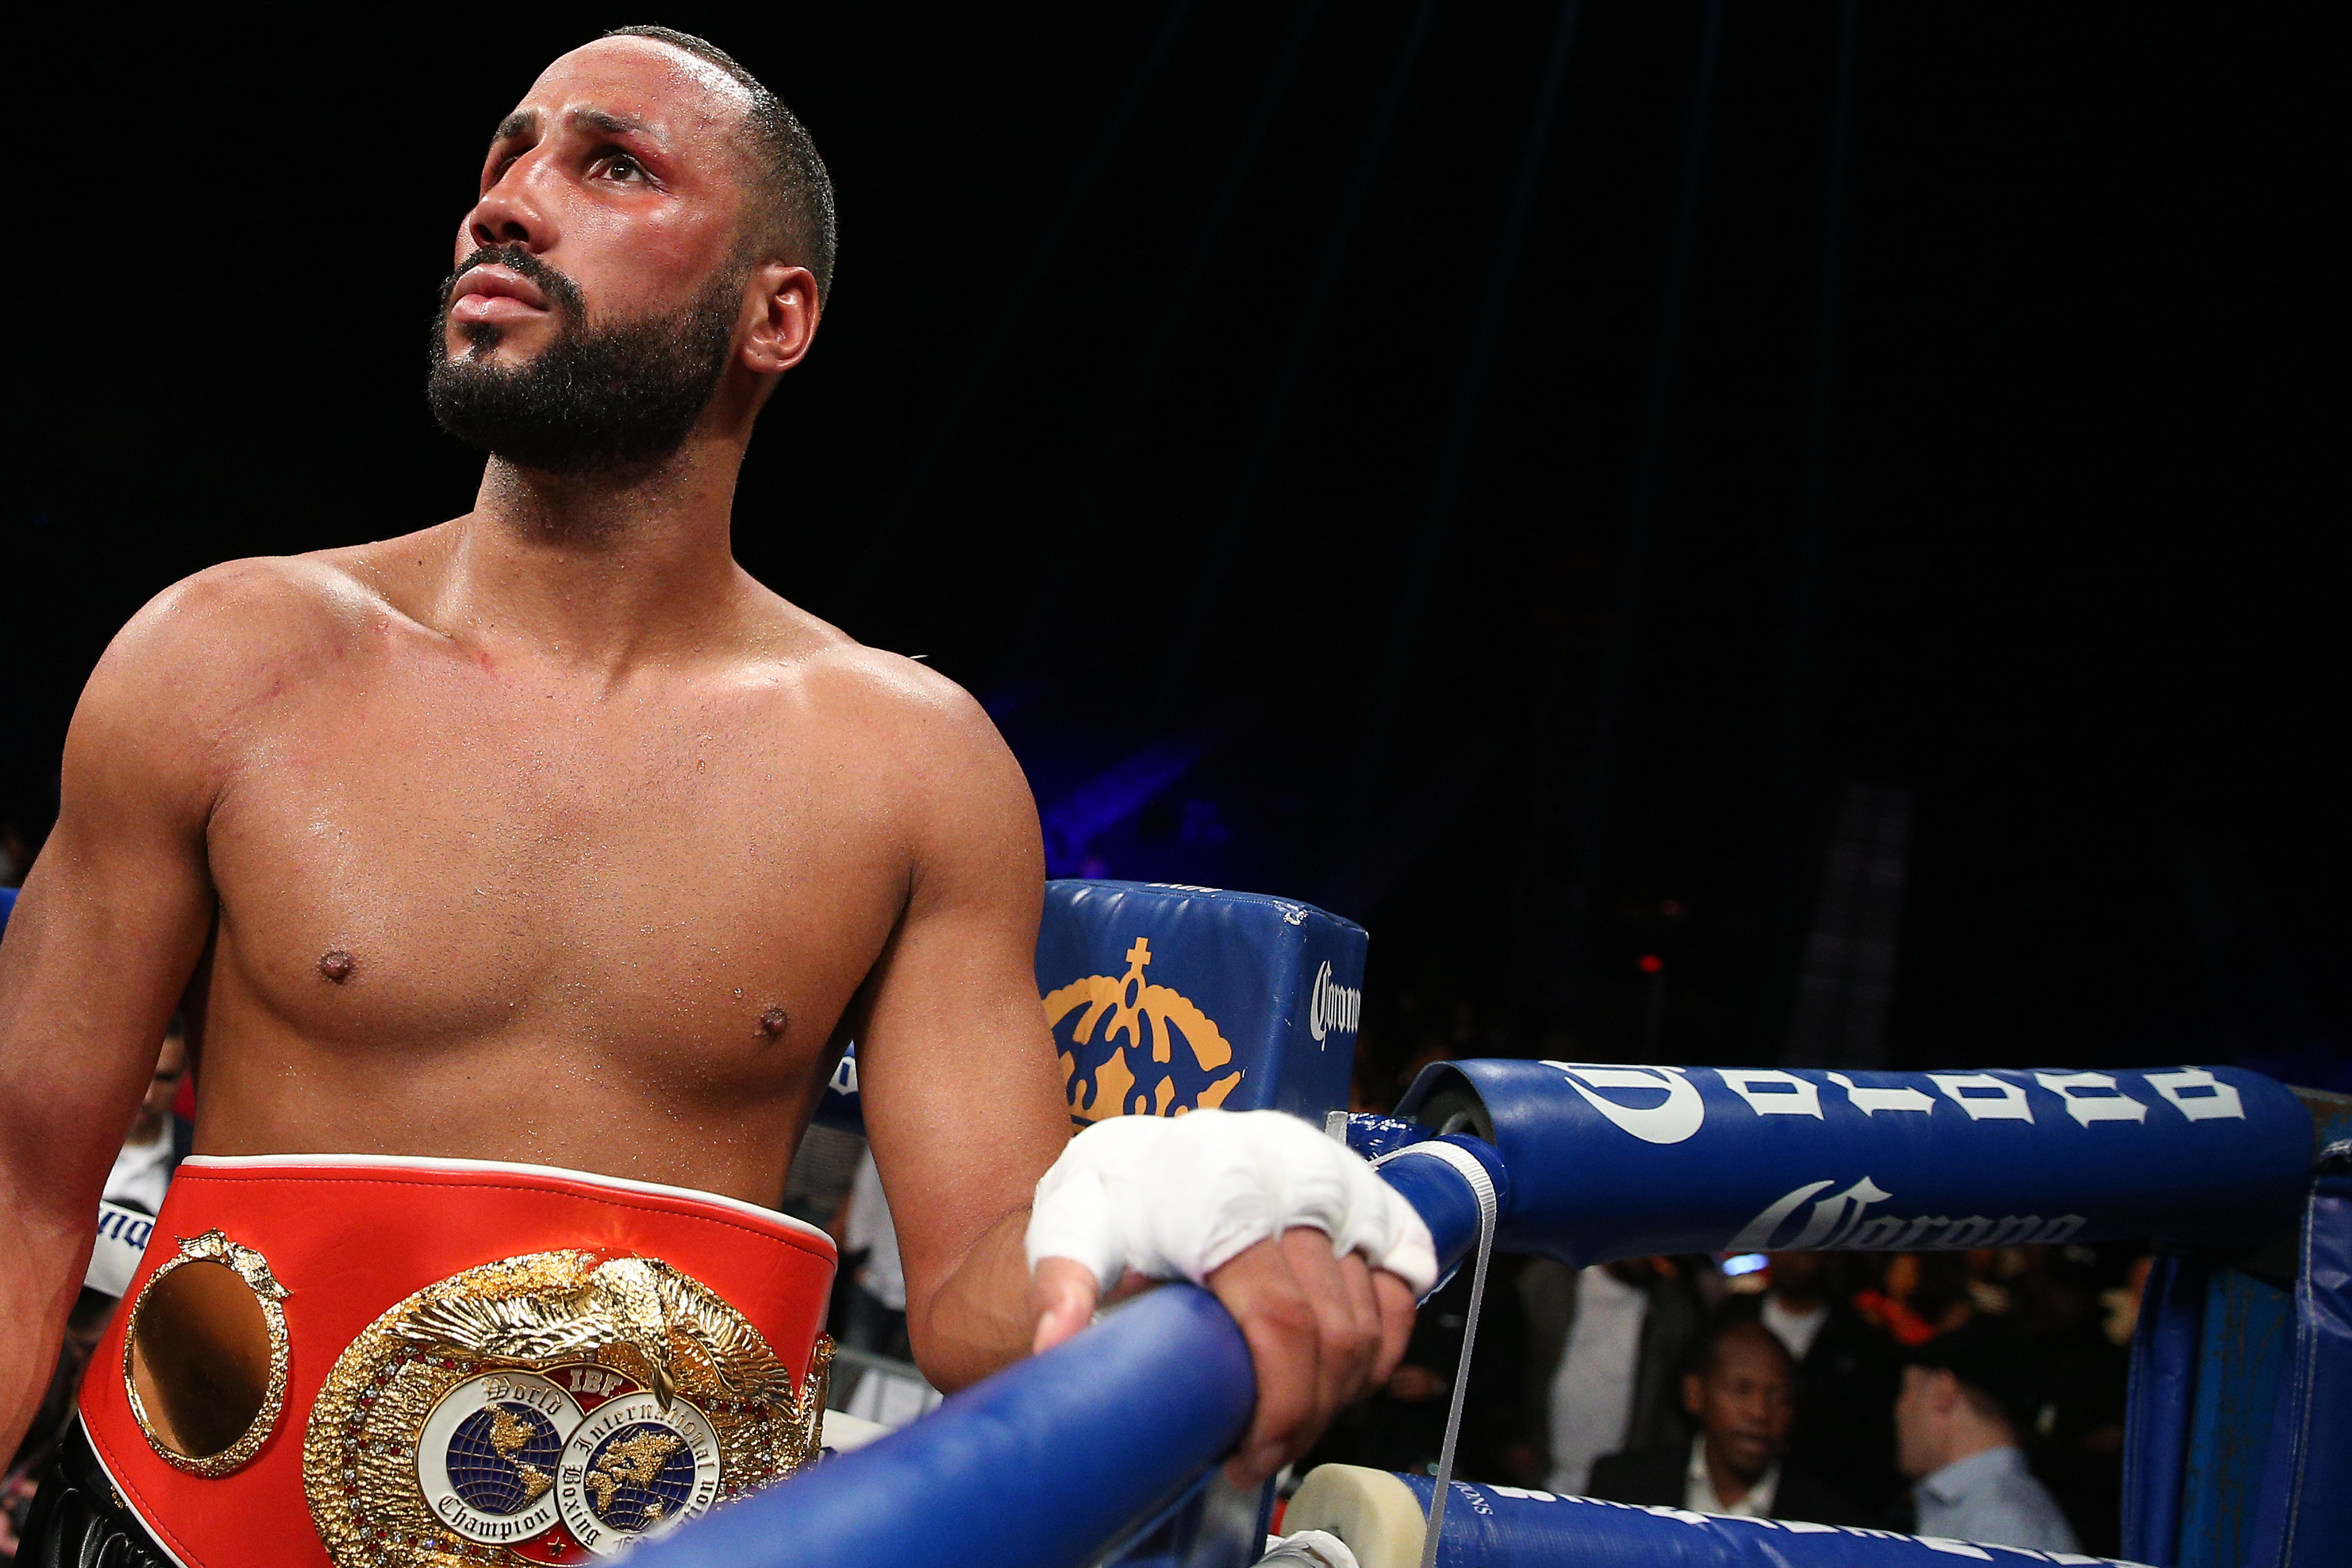 James DeGale uninterested in facing 'desperate' George Groves again